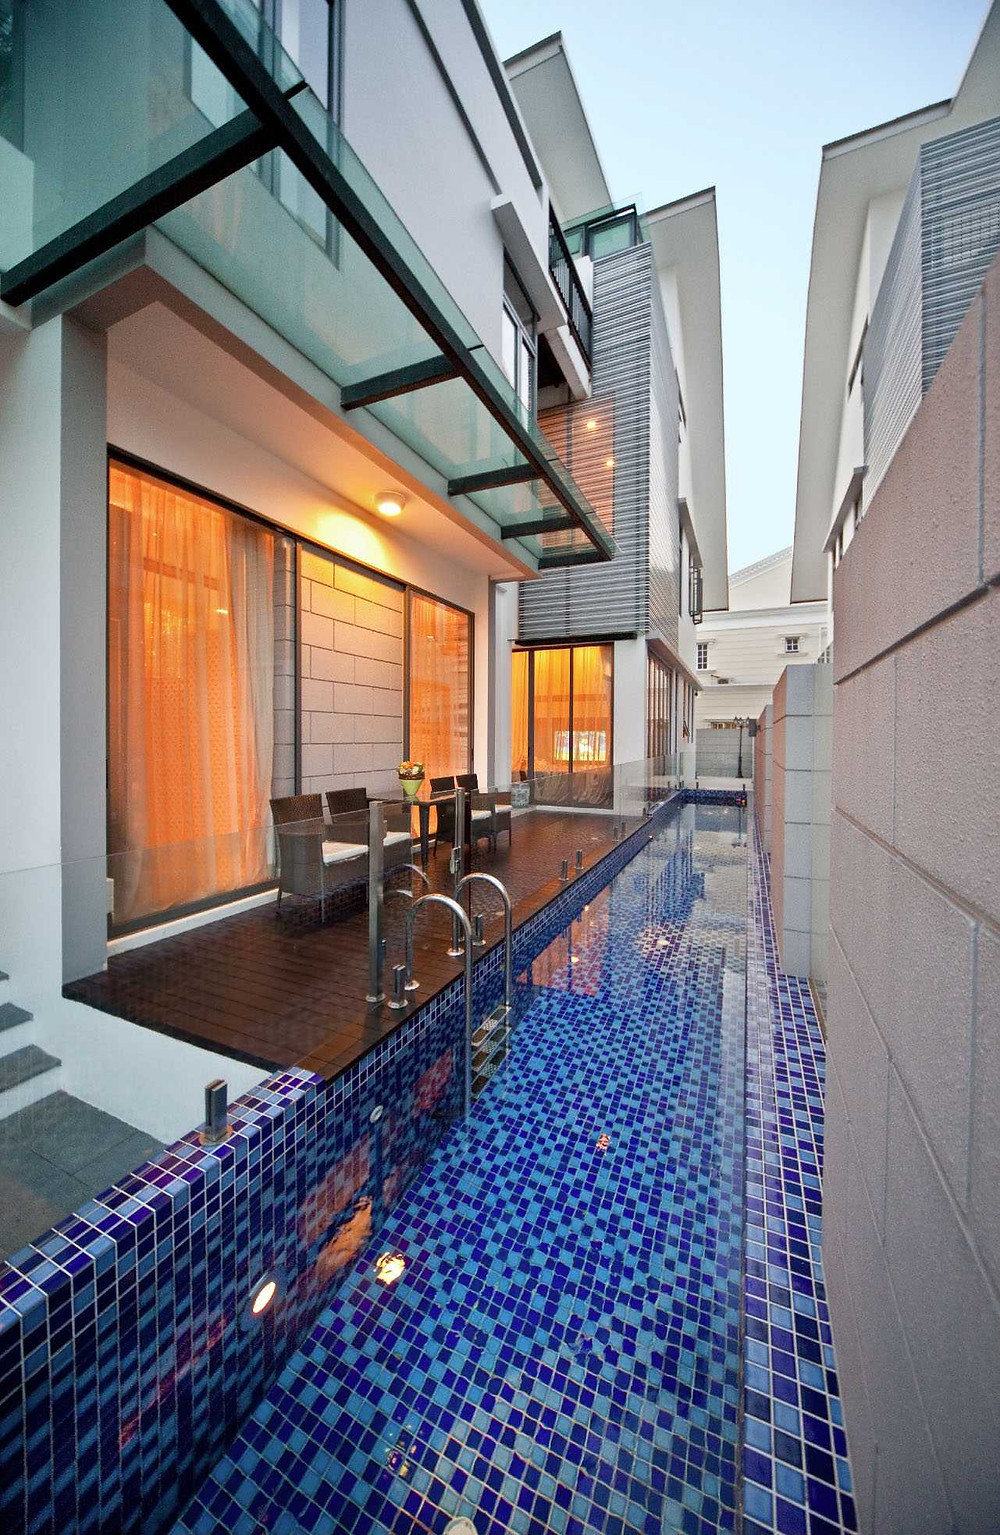 Parkstone Road - Residential Property Singapore - Timeless Designs - Outdoor - Pool - Outdoor Setting - Best Interior Design Singapore - Designworx Interior Consultant